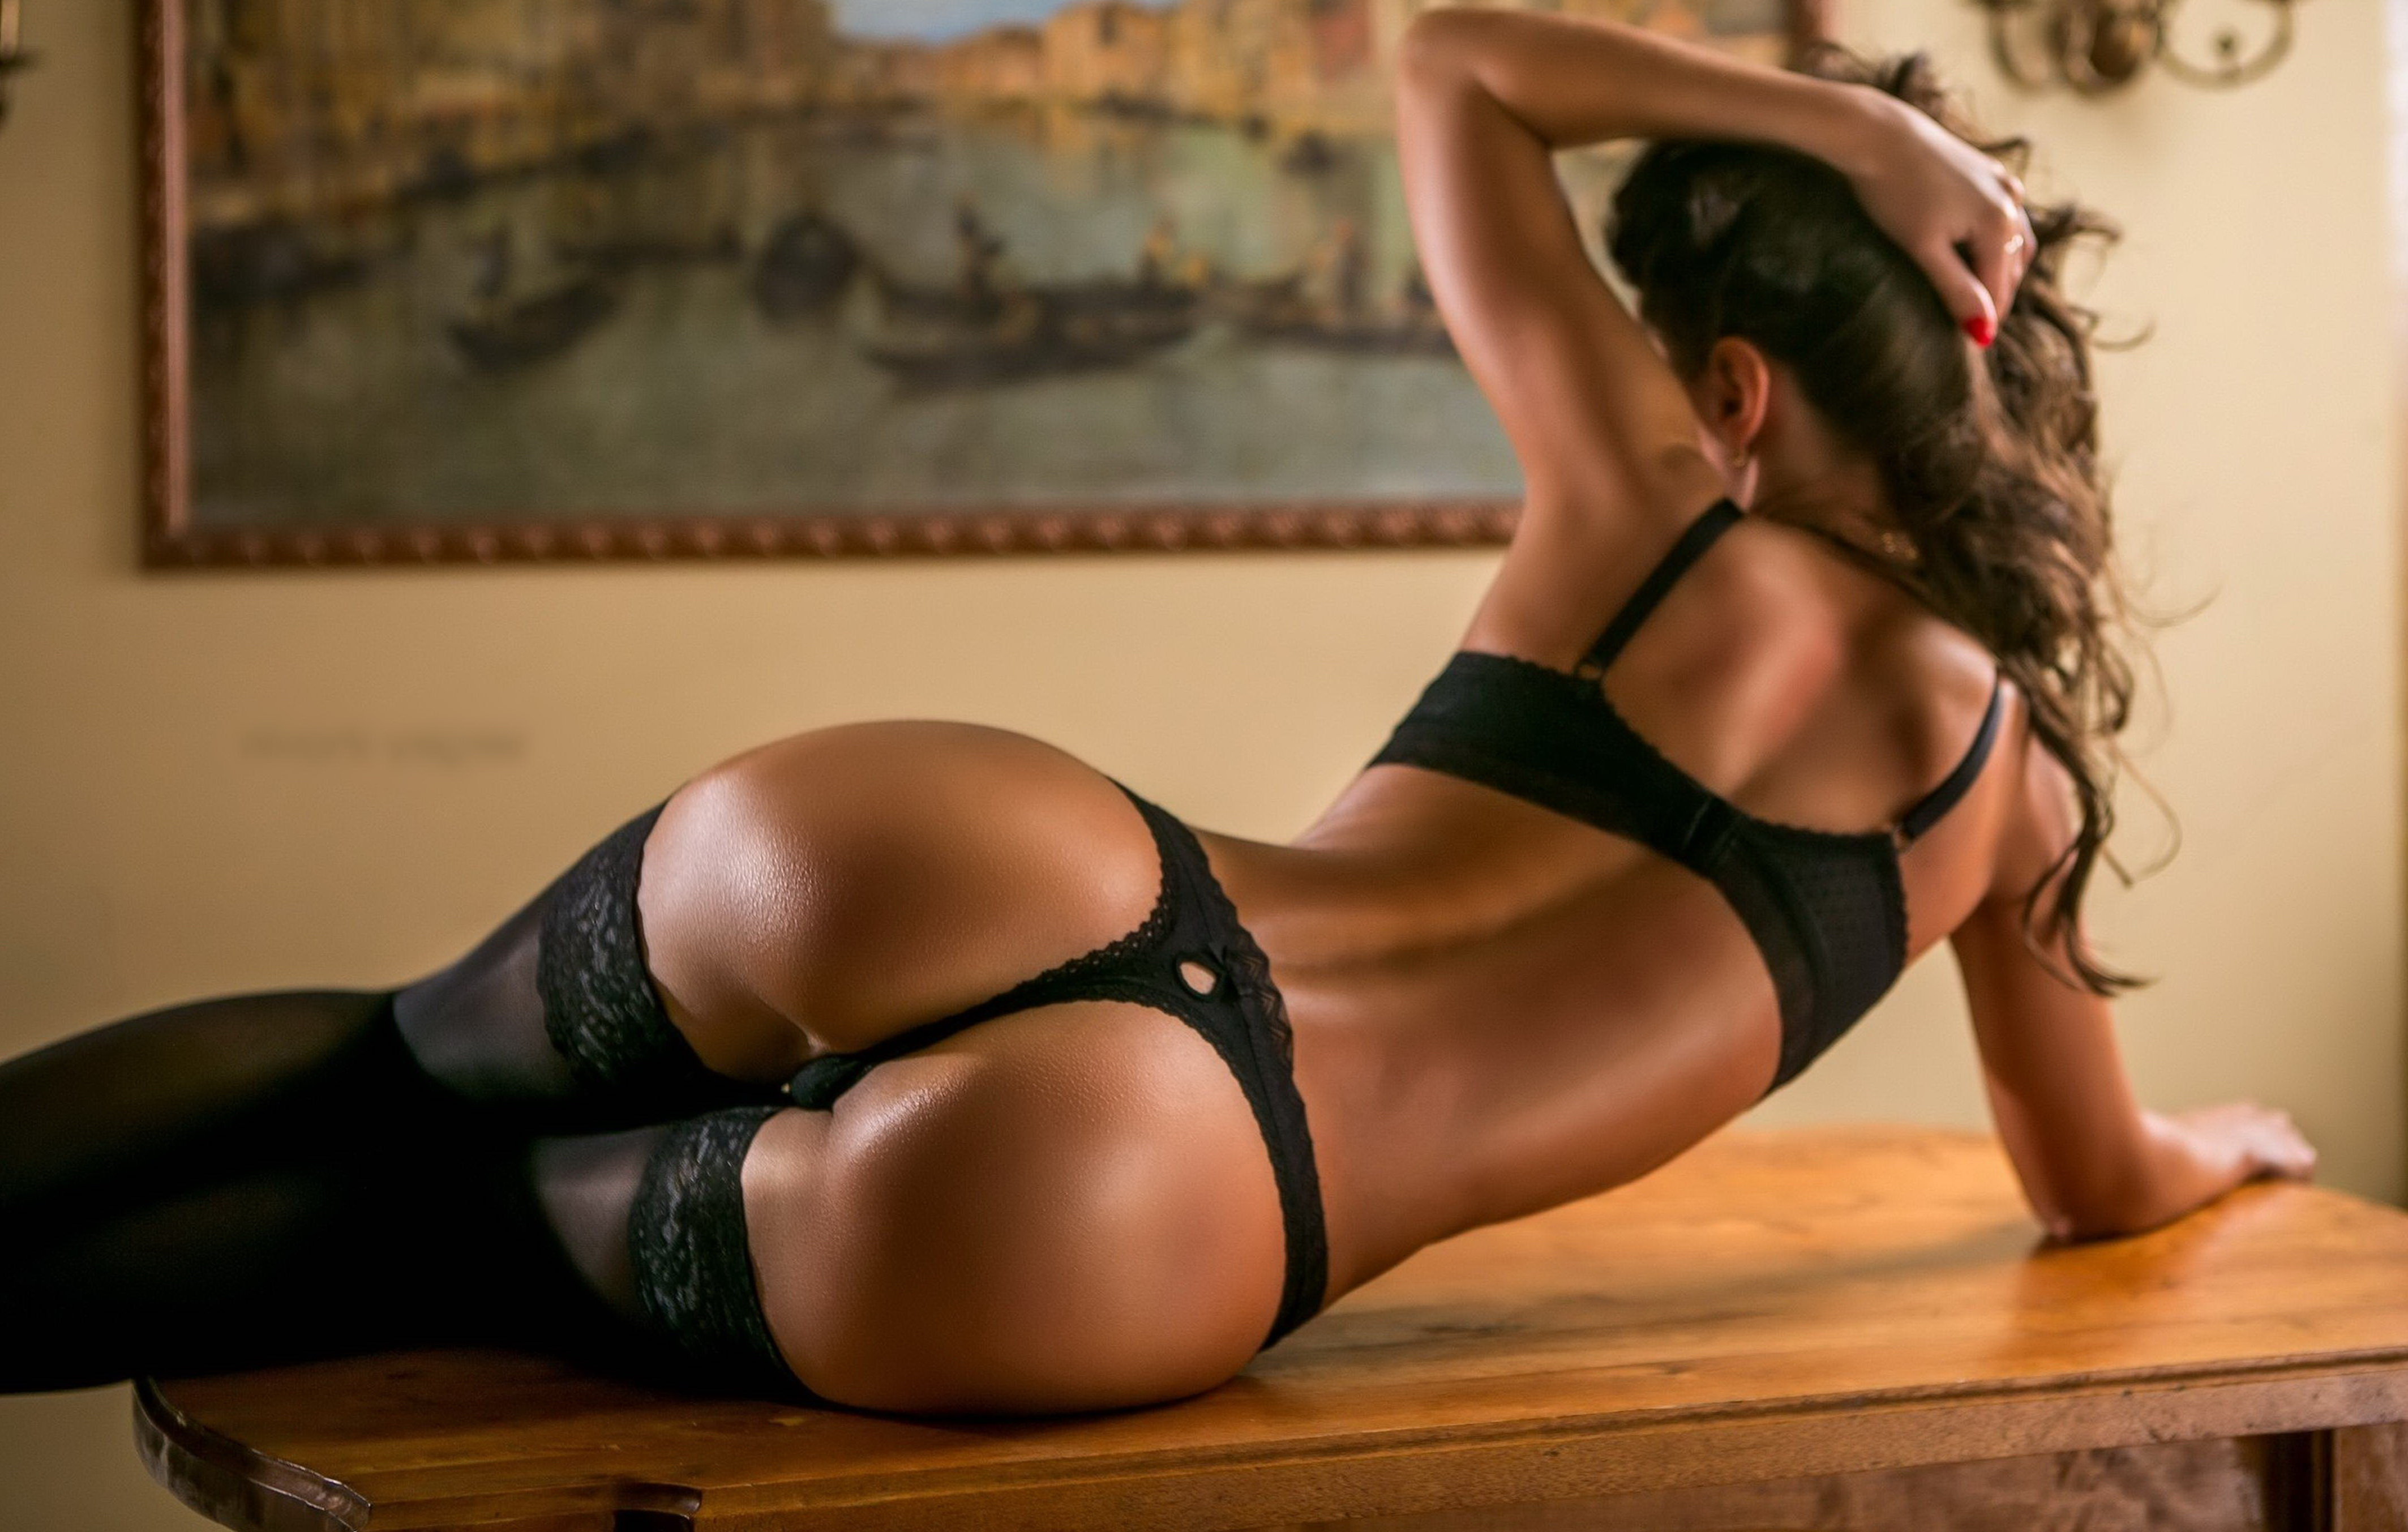 Hot and spicy escorts Hot escort slut loves to wear crotchless panties and she loves a good sex -